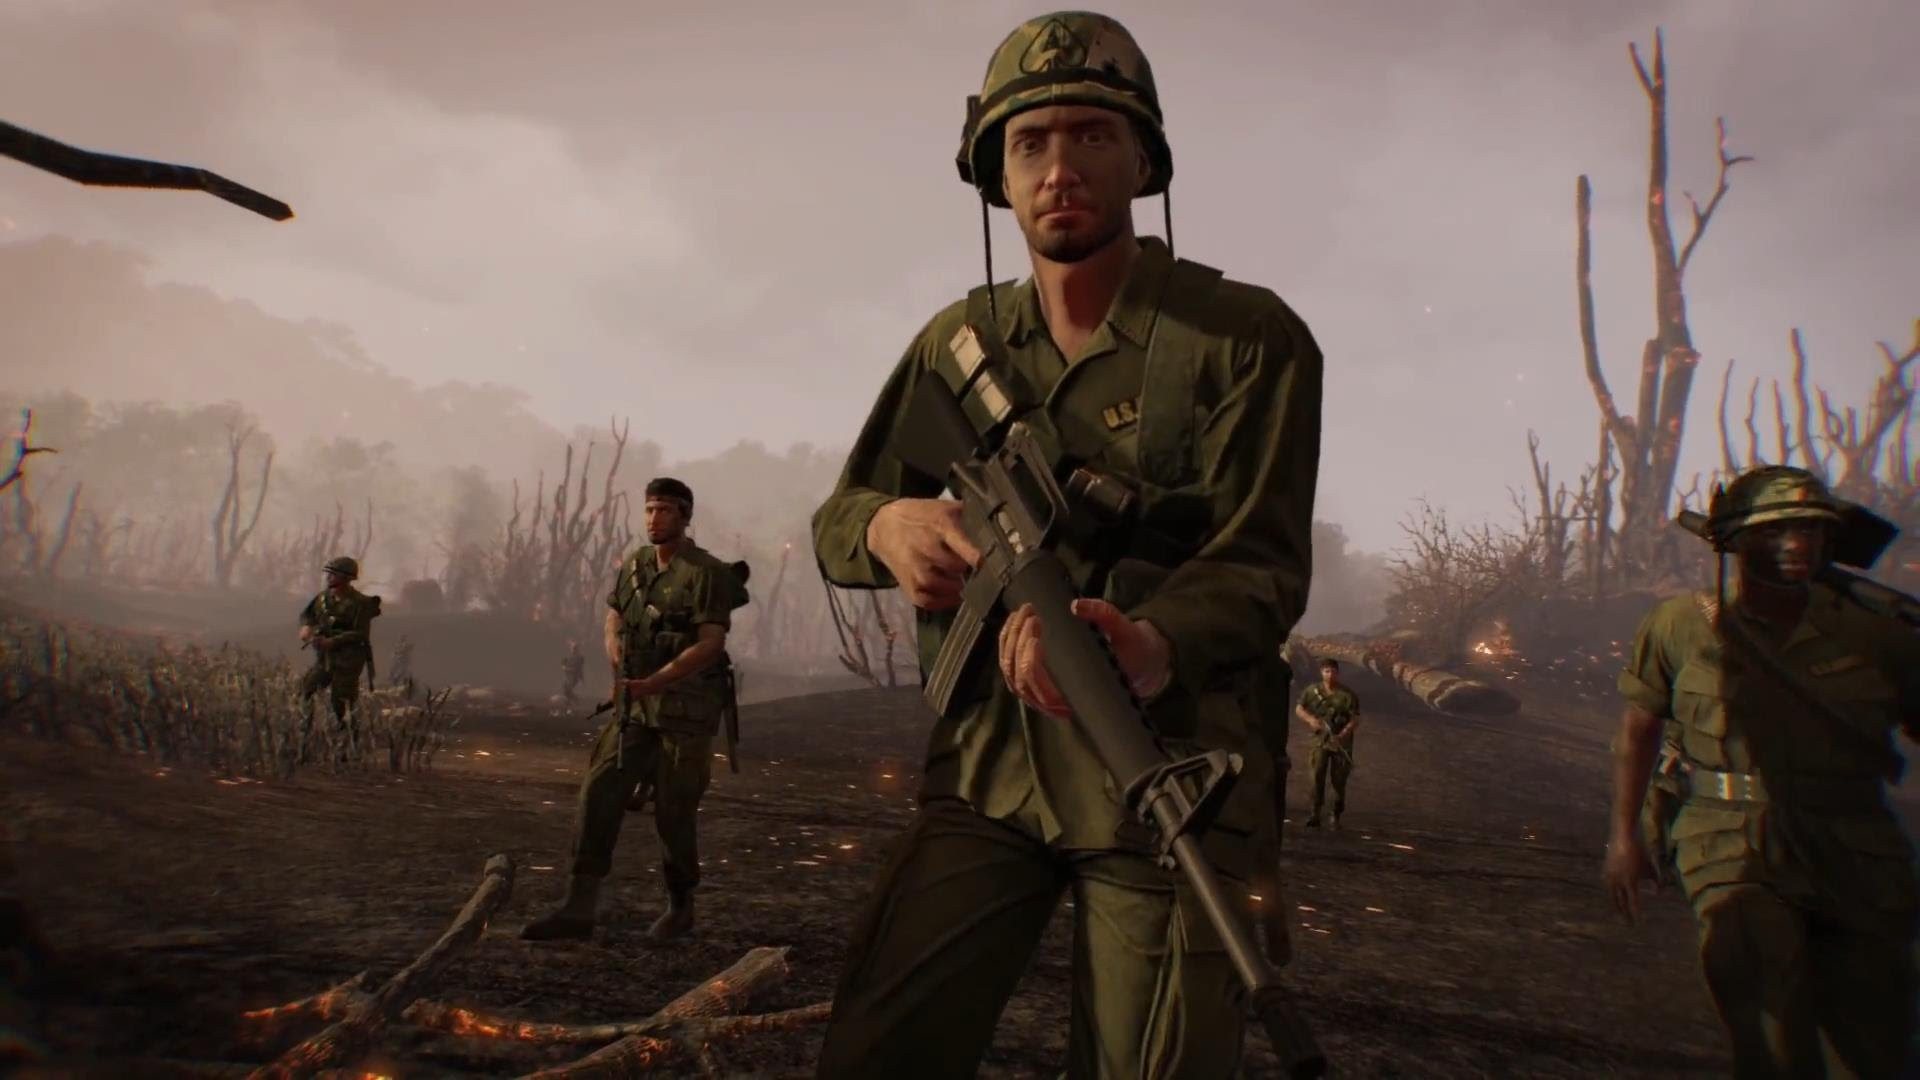 background - Recenze: Rising Storm 2: Vietnam